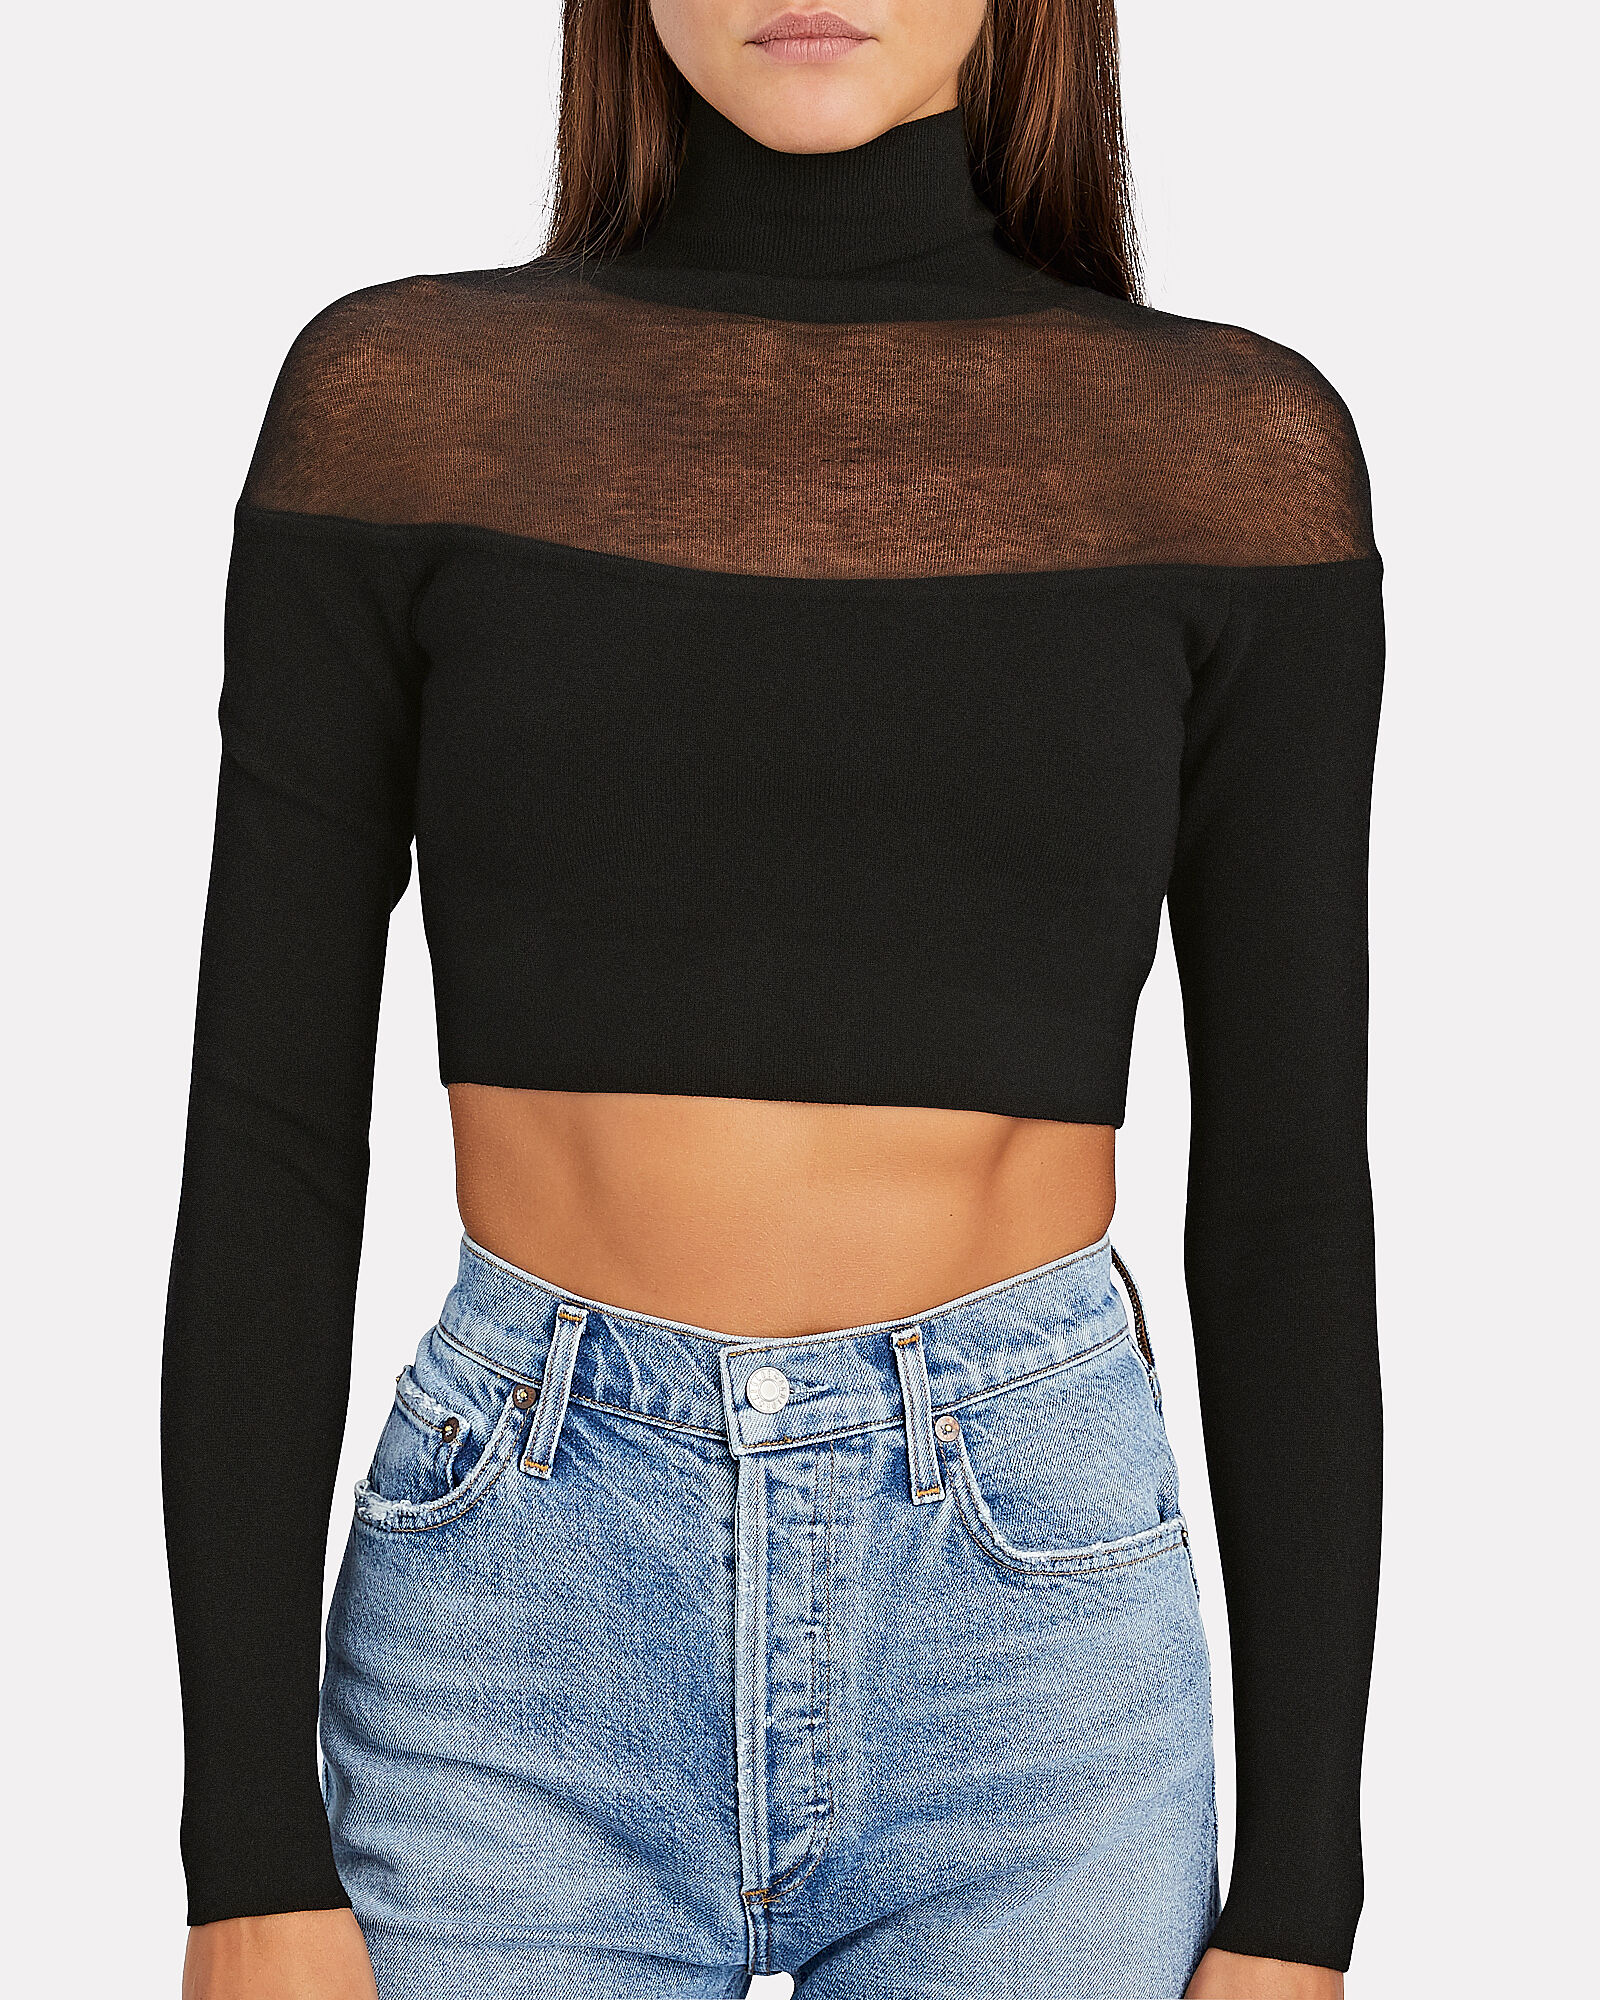 Semi-Sheer Turtleneck Crop Top, BLACK, hi-res